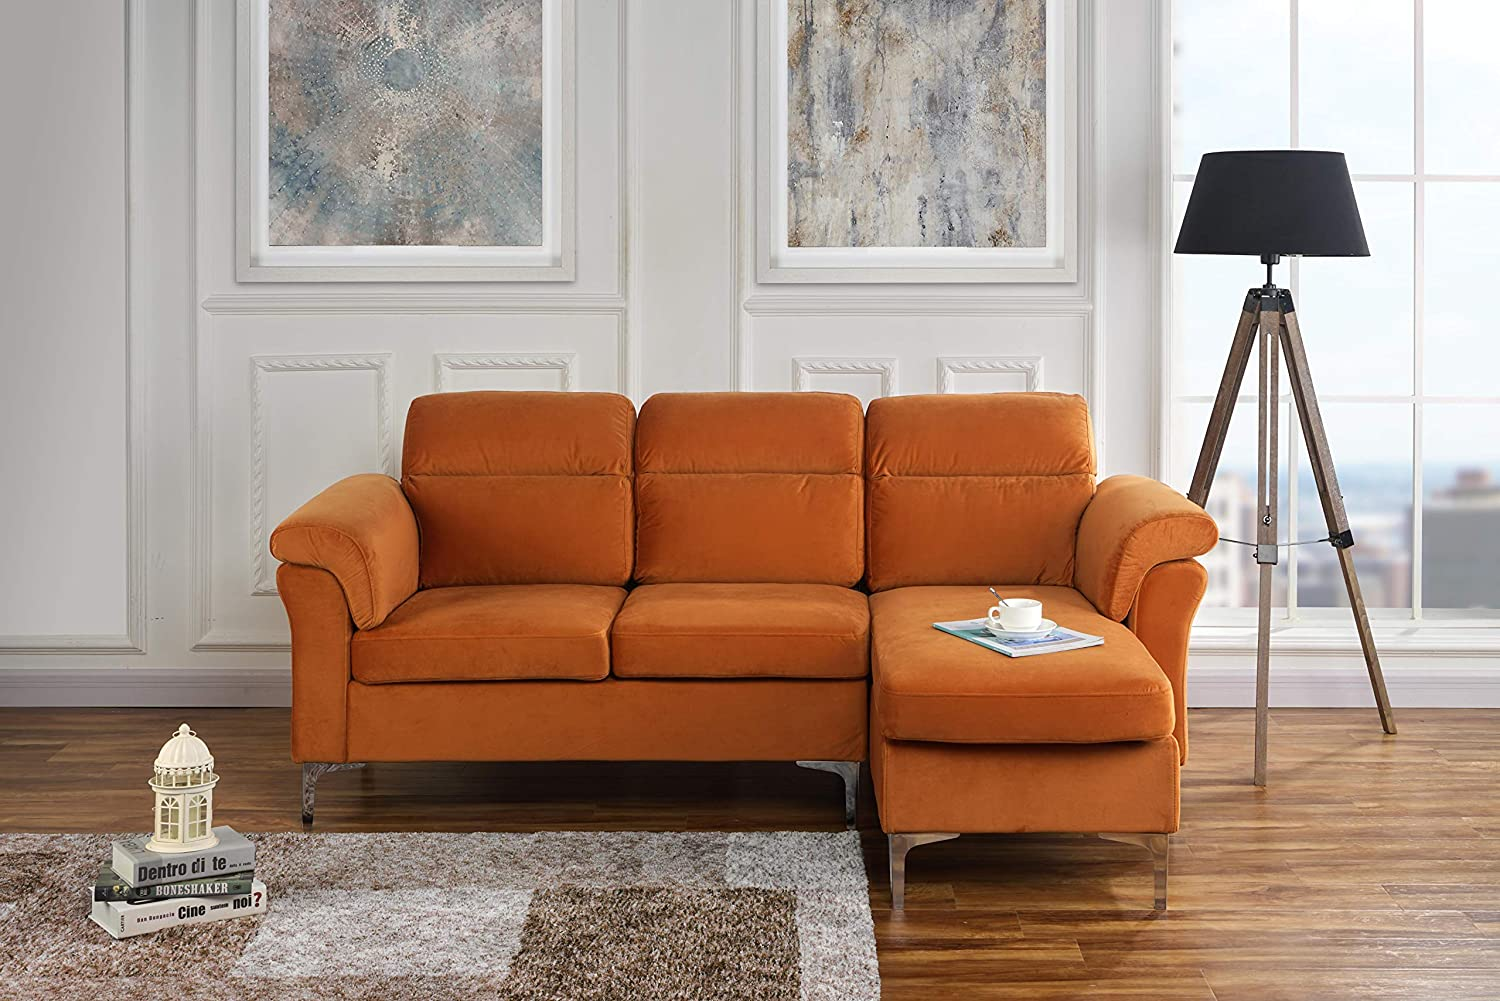 Modern Velvet Fabric Sectional Sofa - Small Space Couch (Rust)